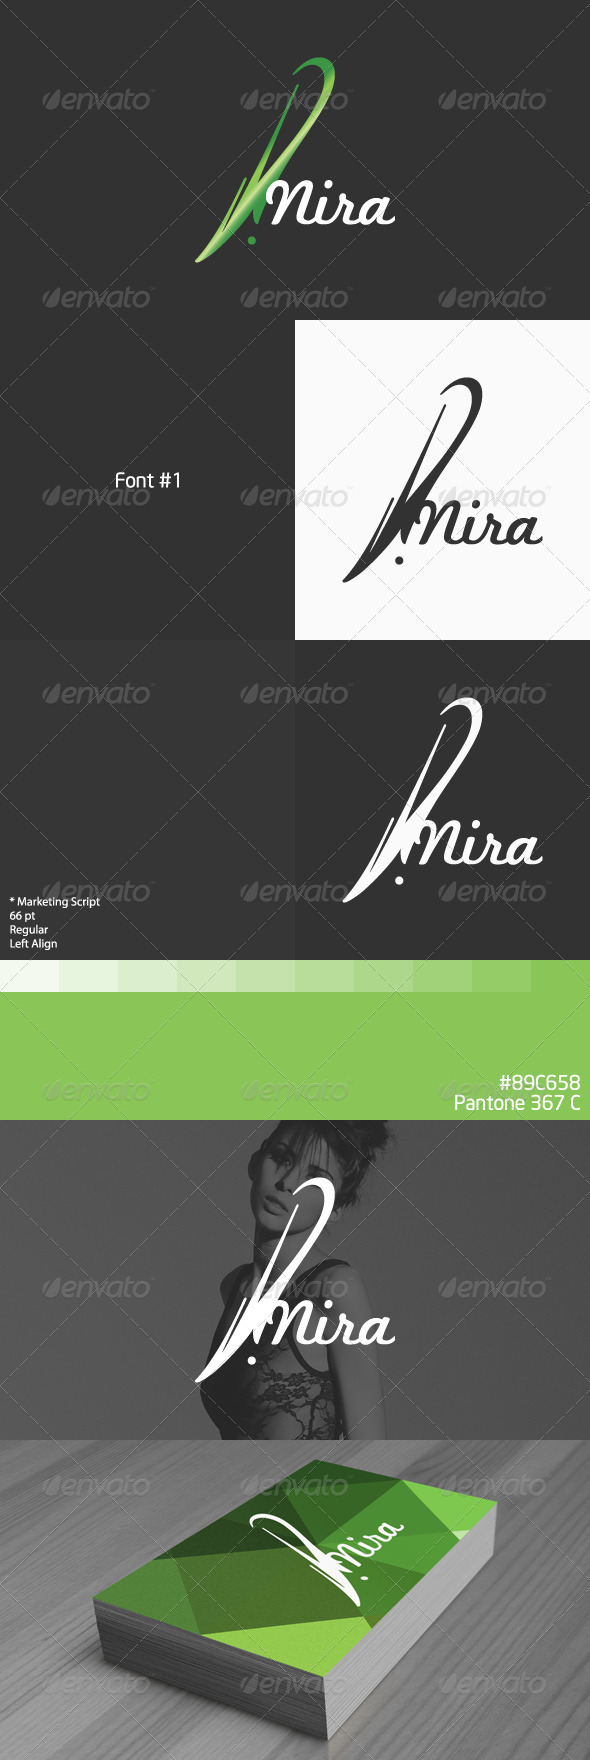 Nira Logo - Vector Abstract